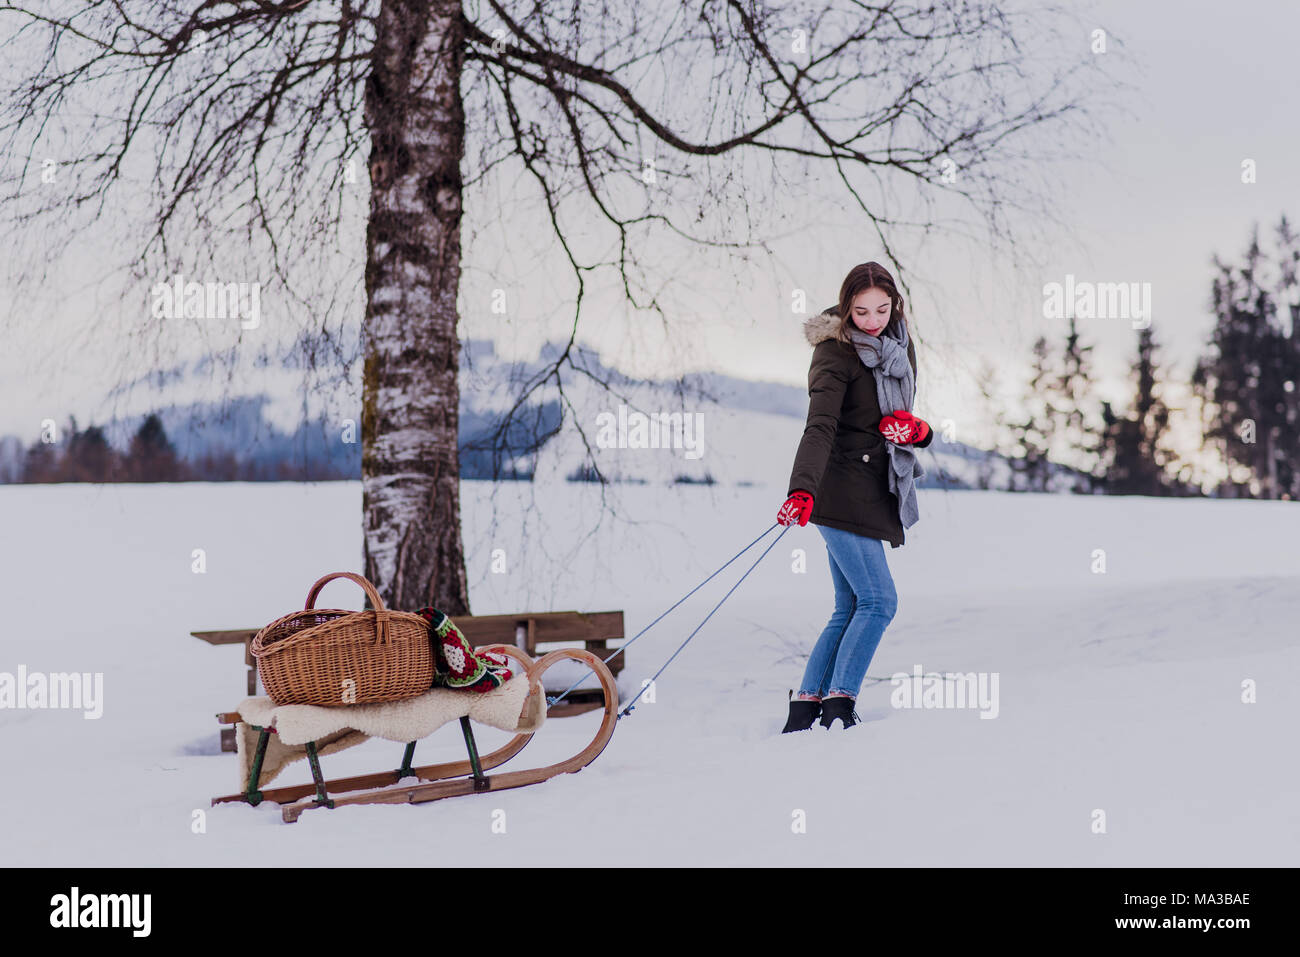 young woman pulls her sledge up the slope - Stock Image